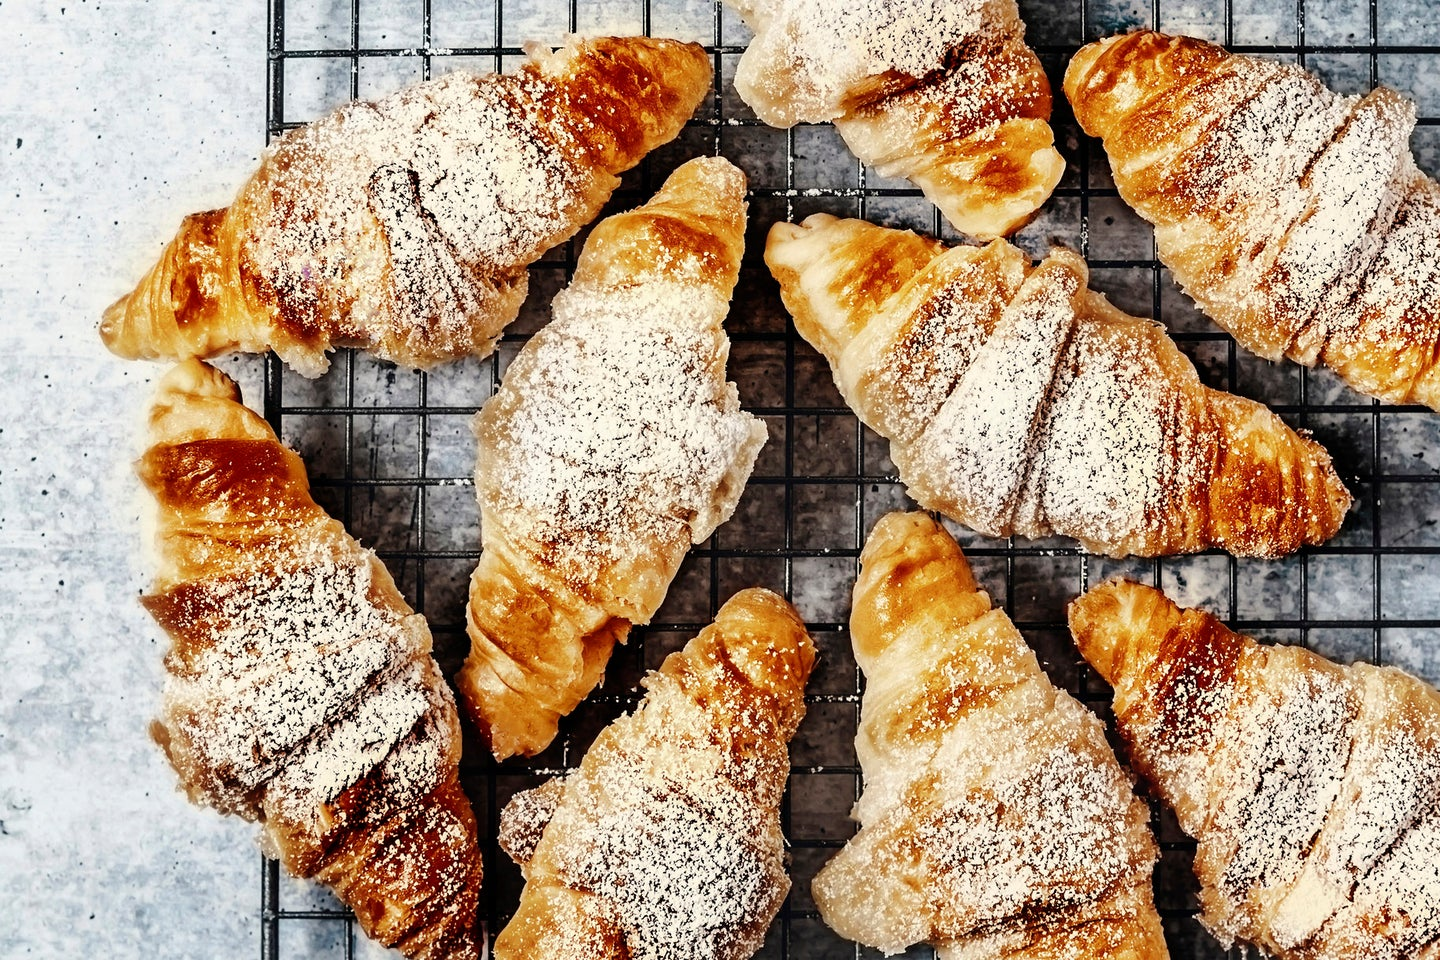 Croissants on a cooling rack on gray background